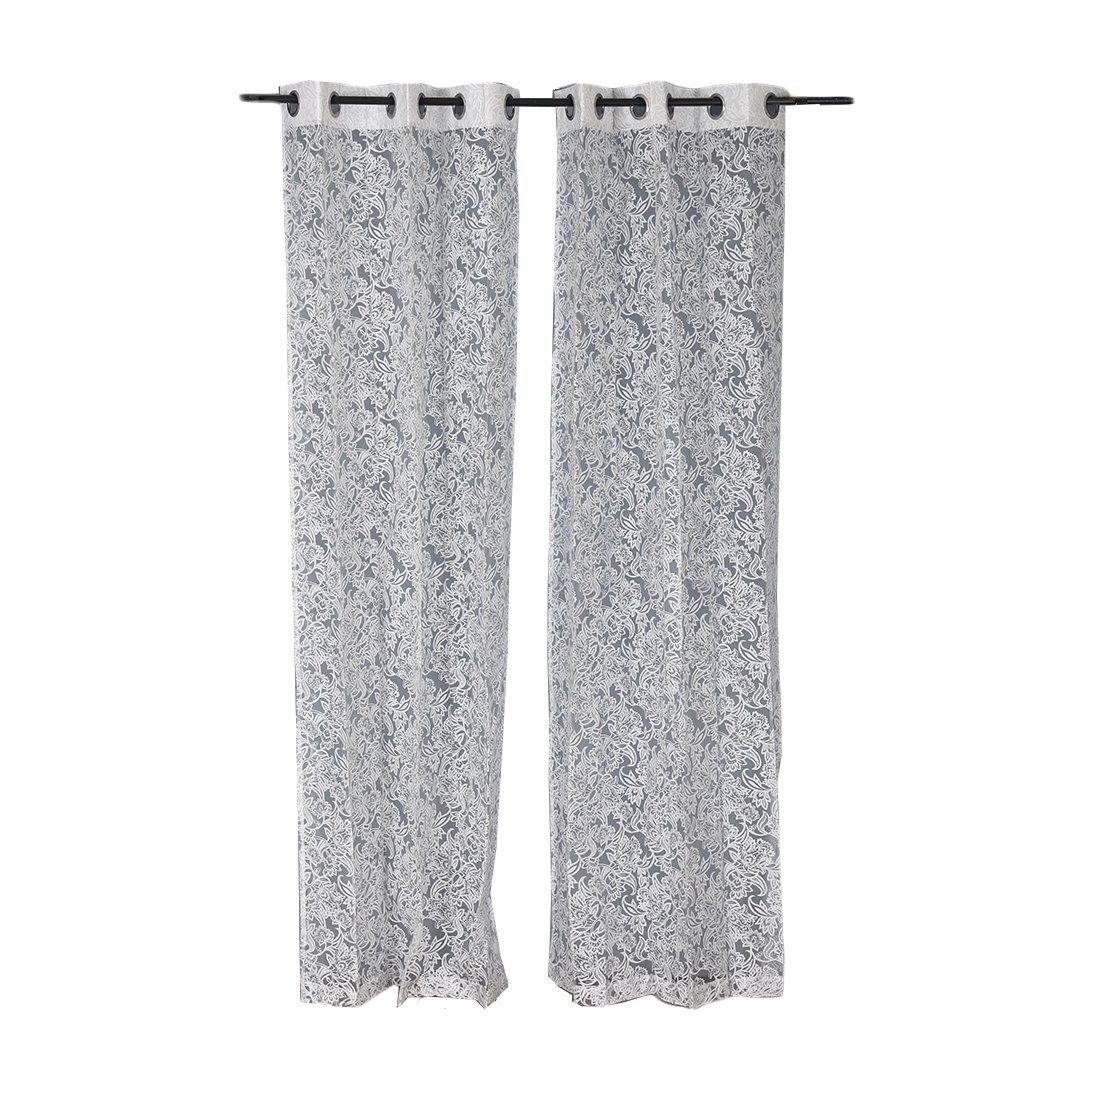 Amour sheer Door Curtain Silver Set of 2 Cotton Polyester Sheer Curtains in Silver Colour by Living Essence